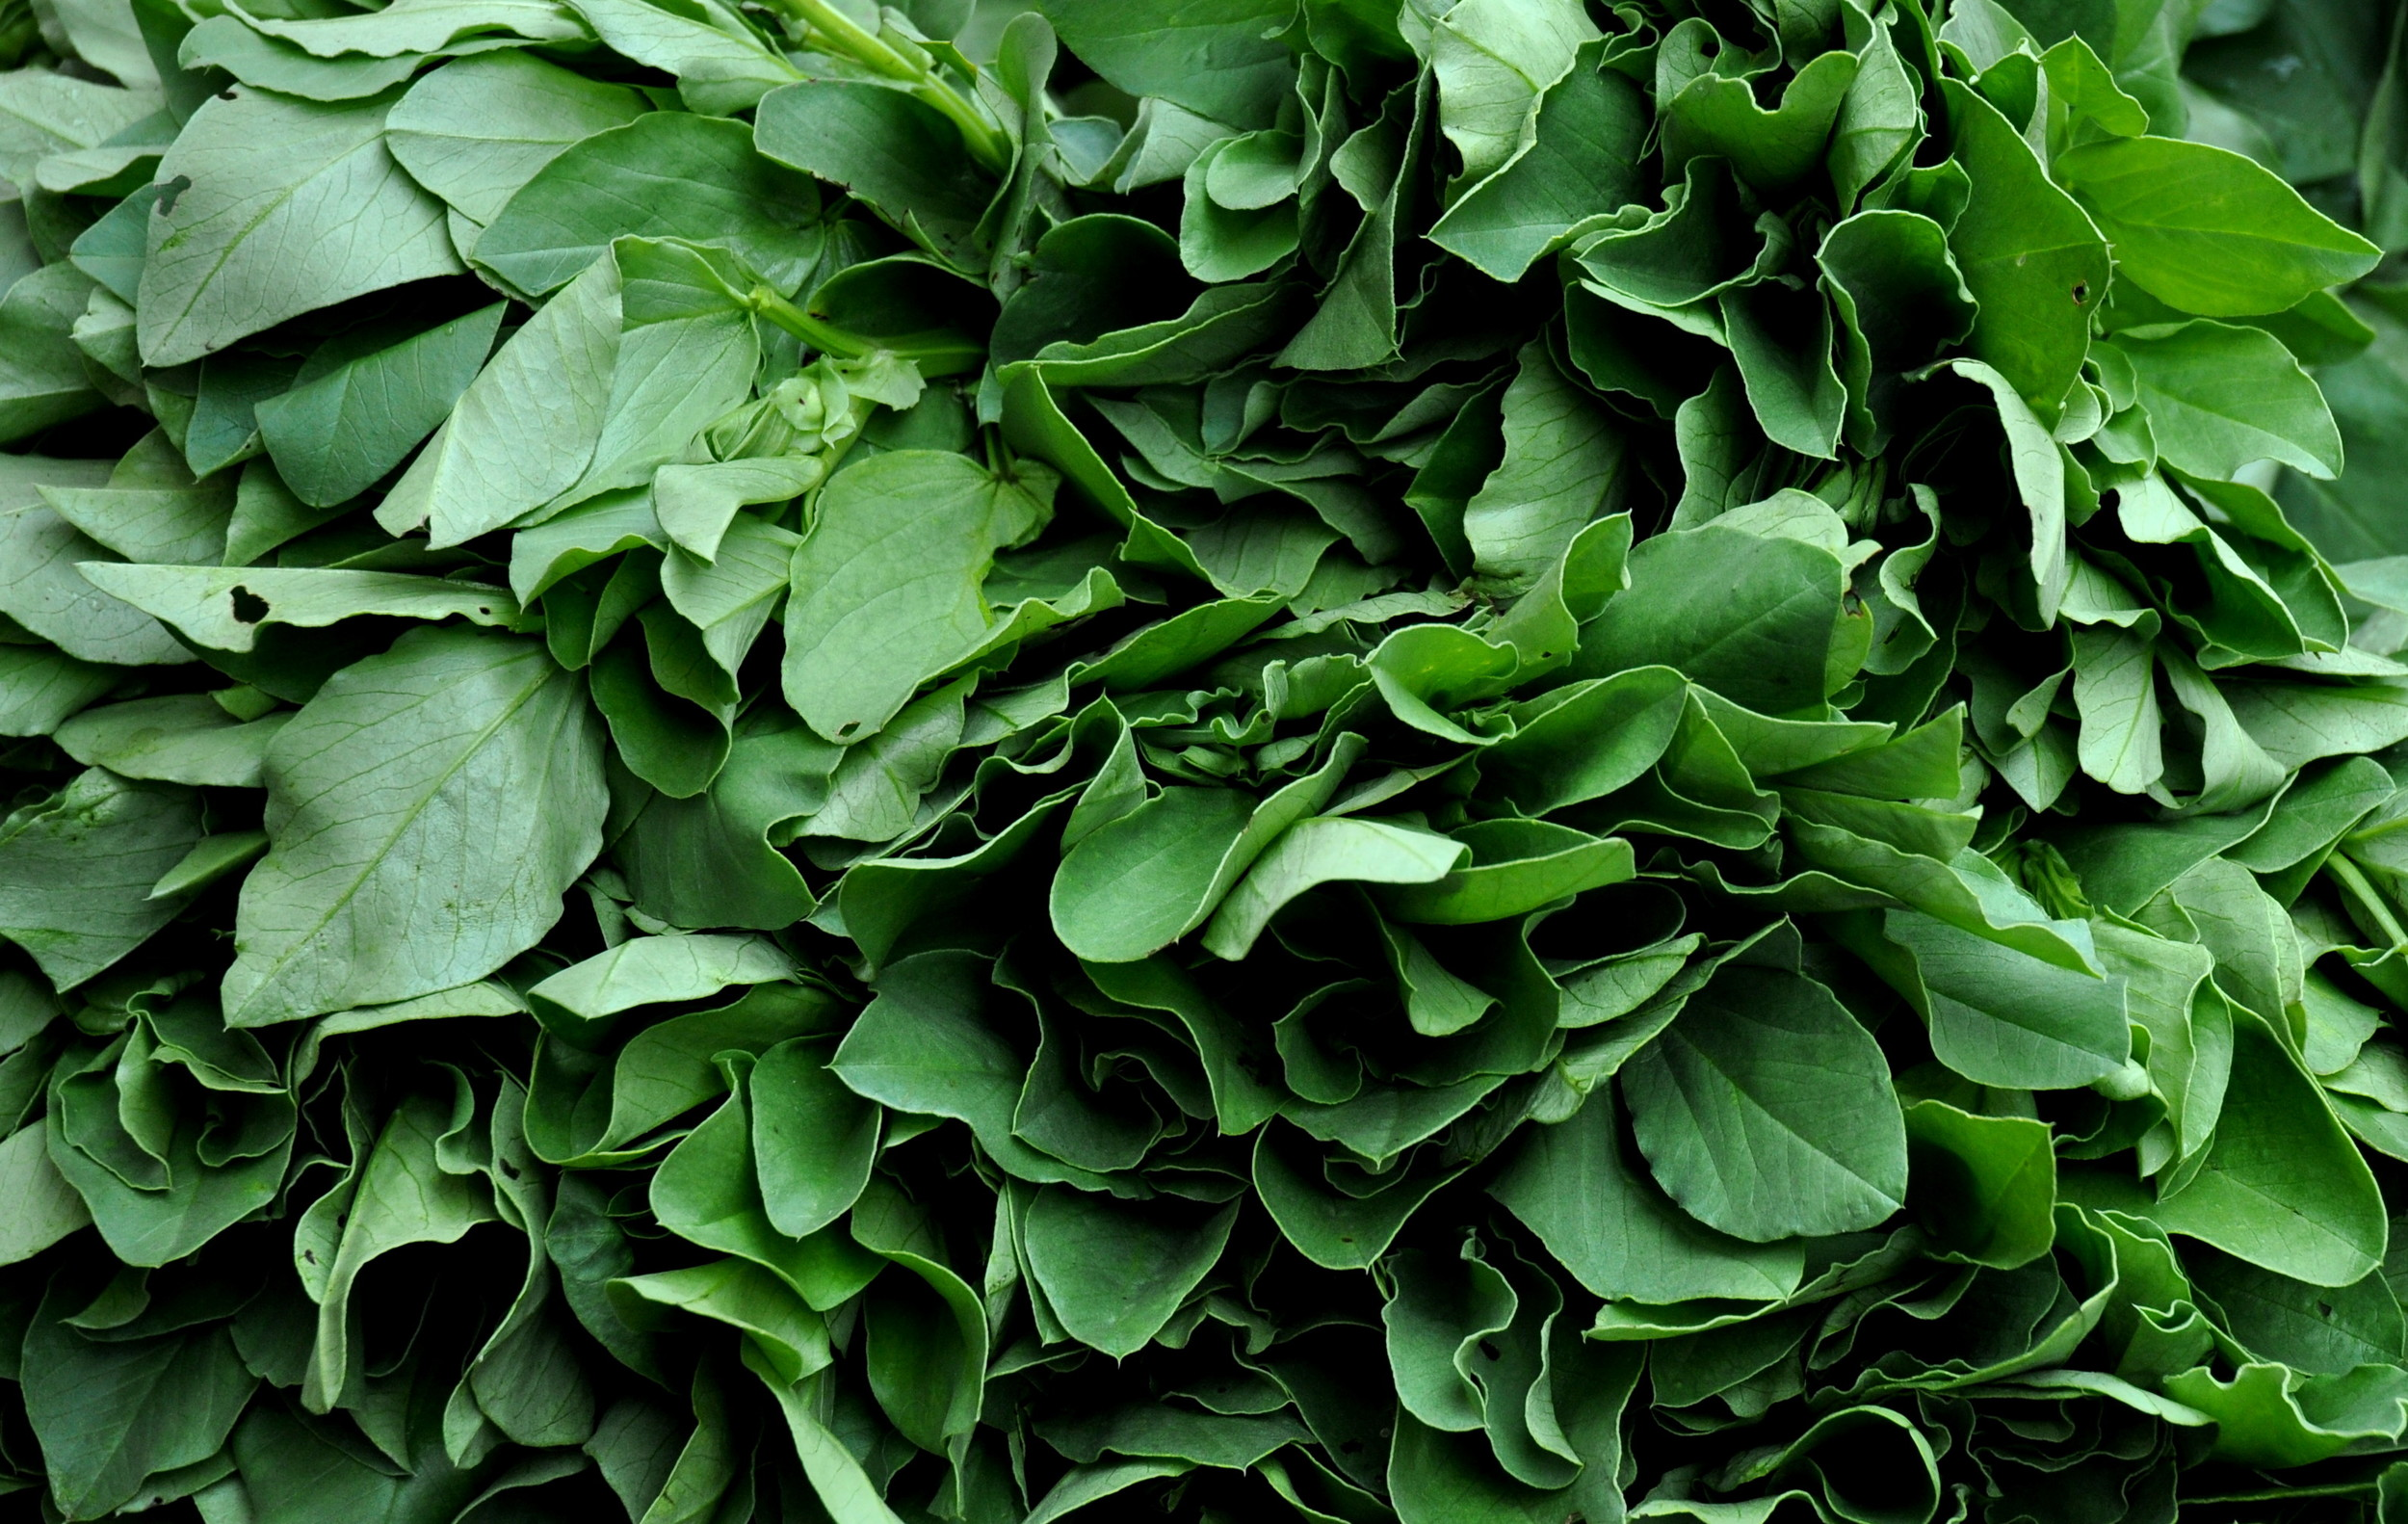 Fava bean leaves from Stoney Plains Organic Farm. Photo copyright 2013 by Zachary D. Lyons.